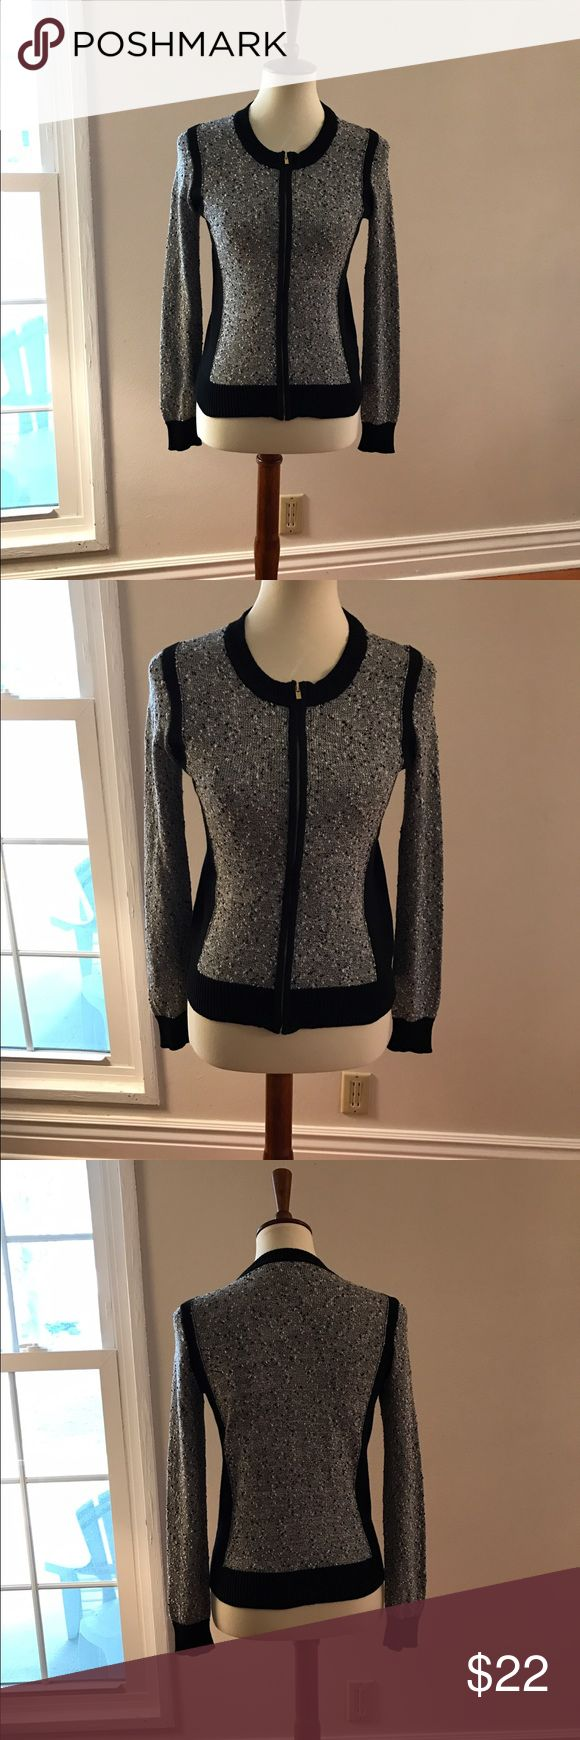 BANANA REPUBLIC Black/WhiteMarled Full Zip Sweater Like new!  Marled sweater with full zipper. Size small Banana Republic Sweaters Cardigans